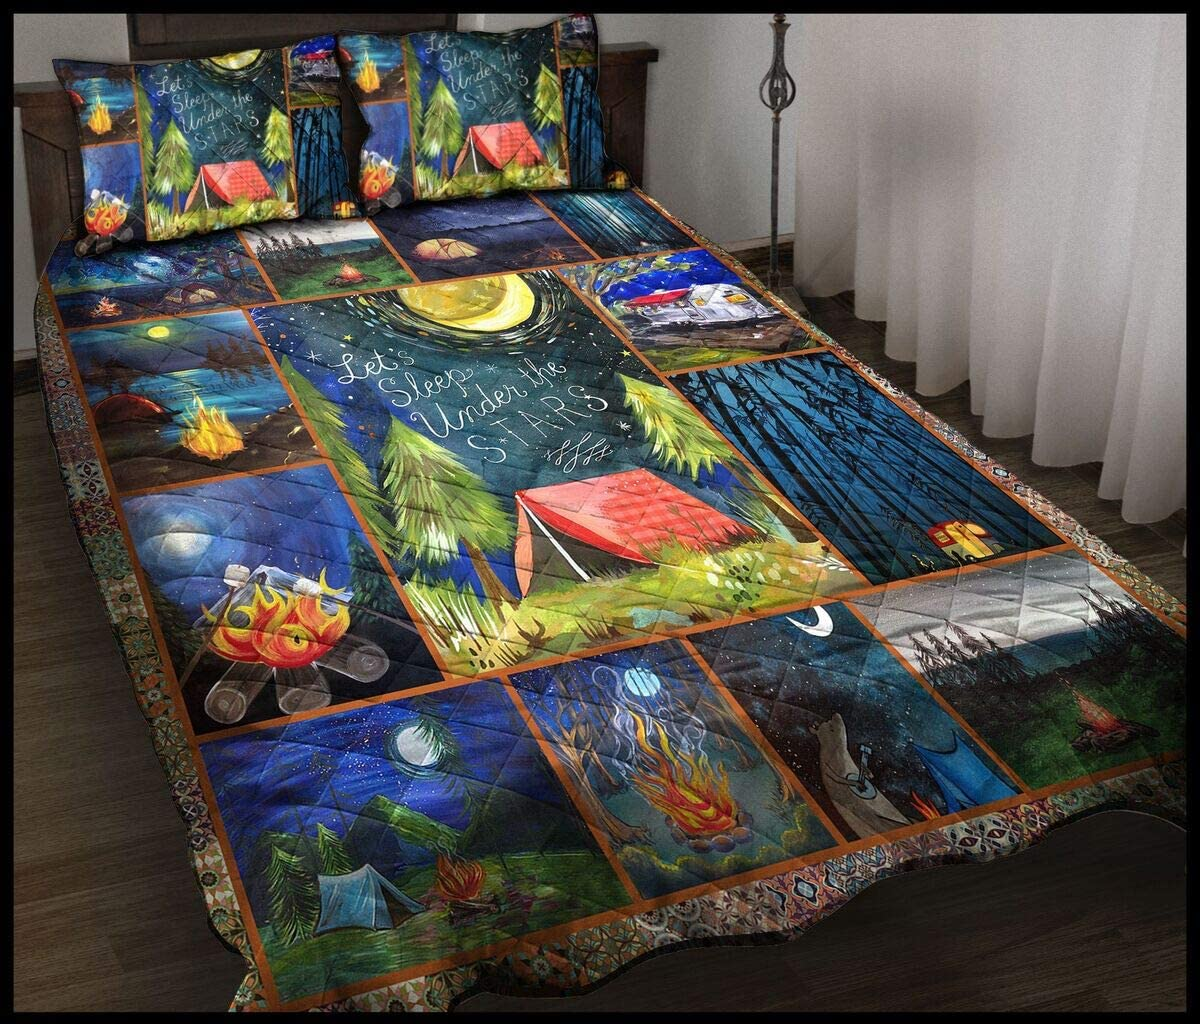 Personalized Lets Sleep Under Stars Quilt Mean Wor security You The Mom Raleigh Mall